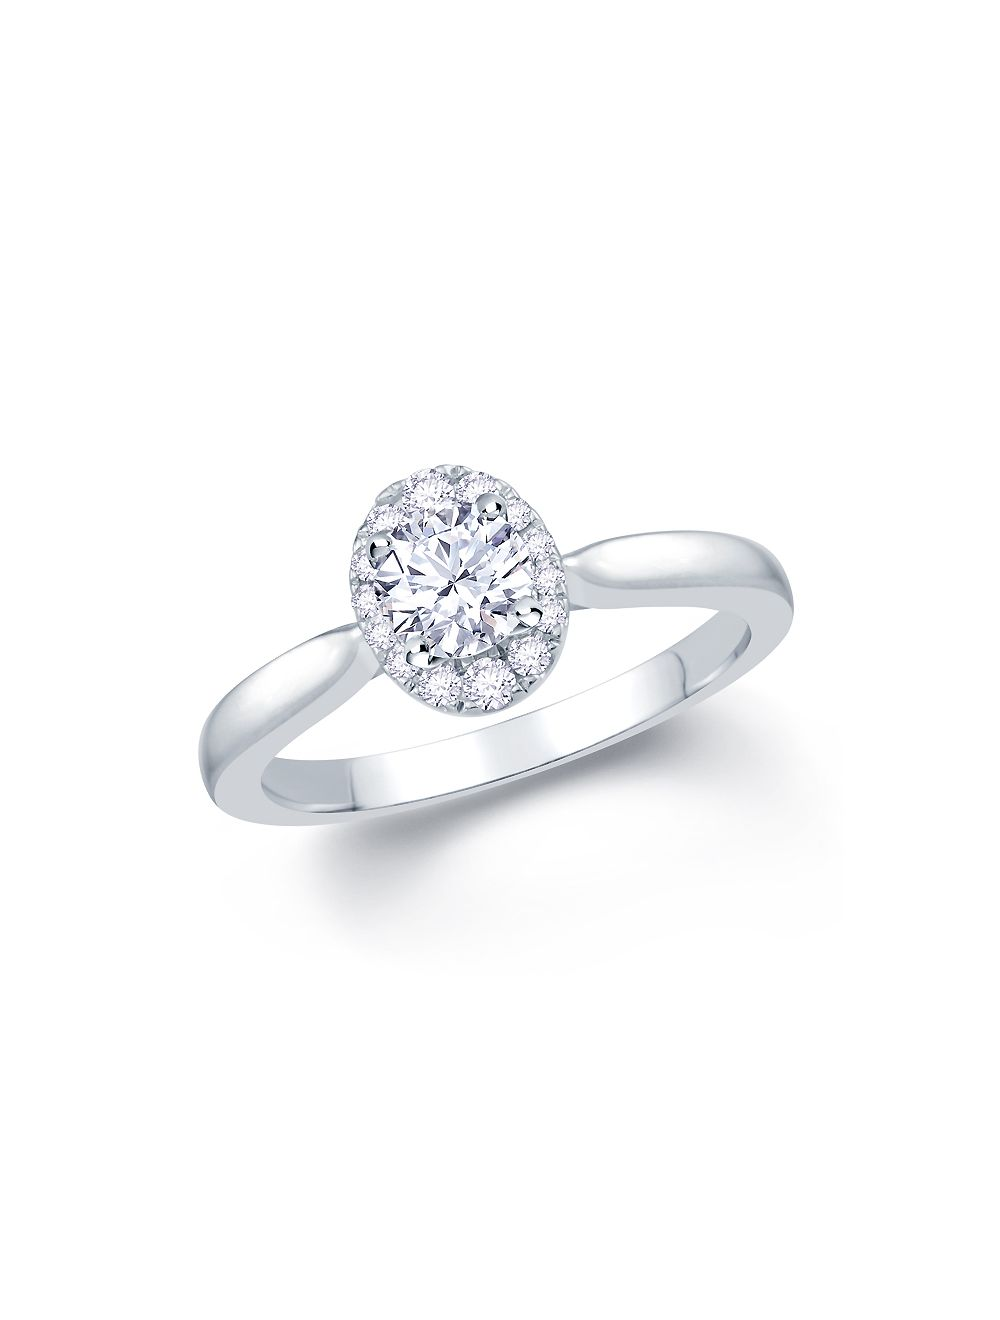 a6738ef0ce0dd 18ct white gold solitaire diamond with oval shape diamond halo engagement  ring